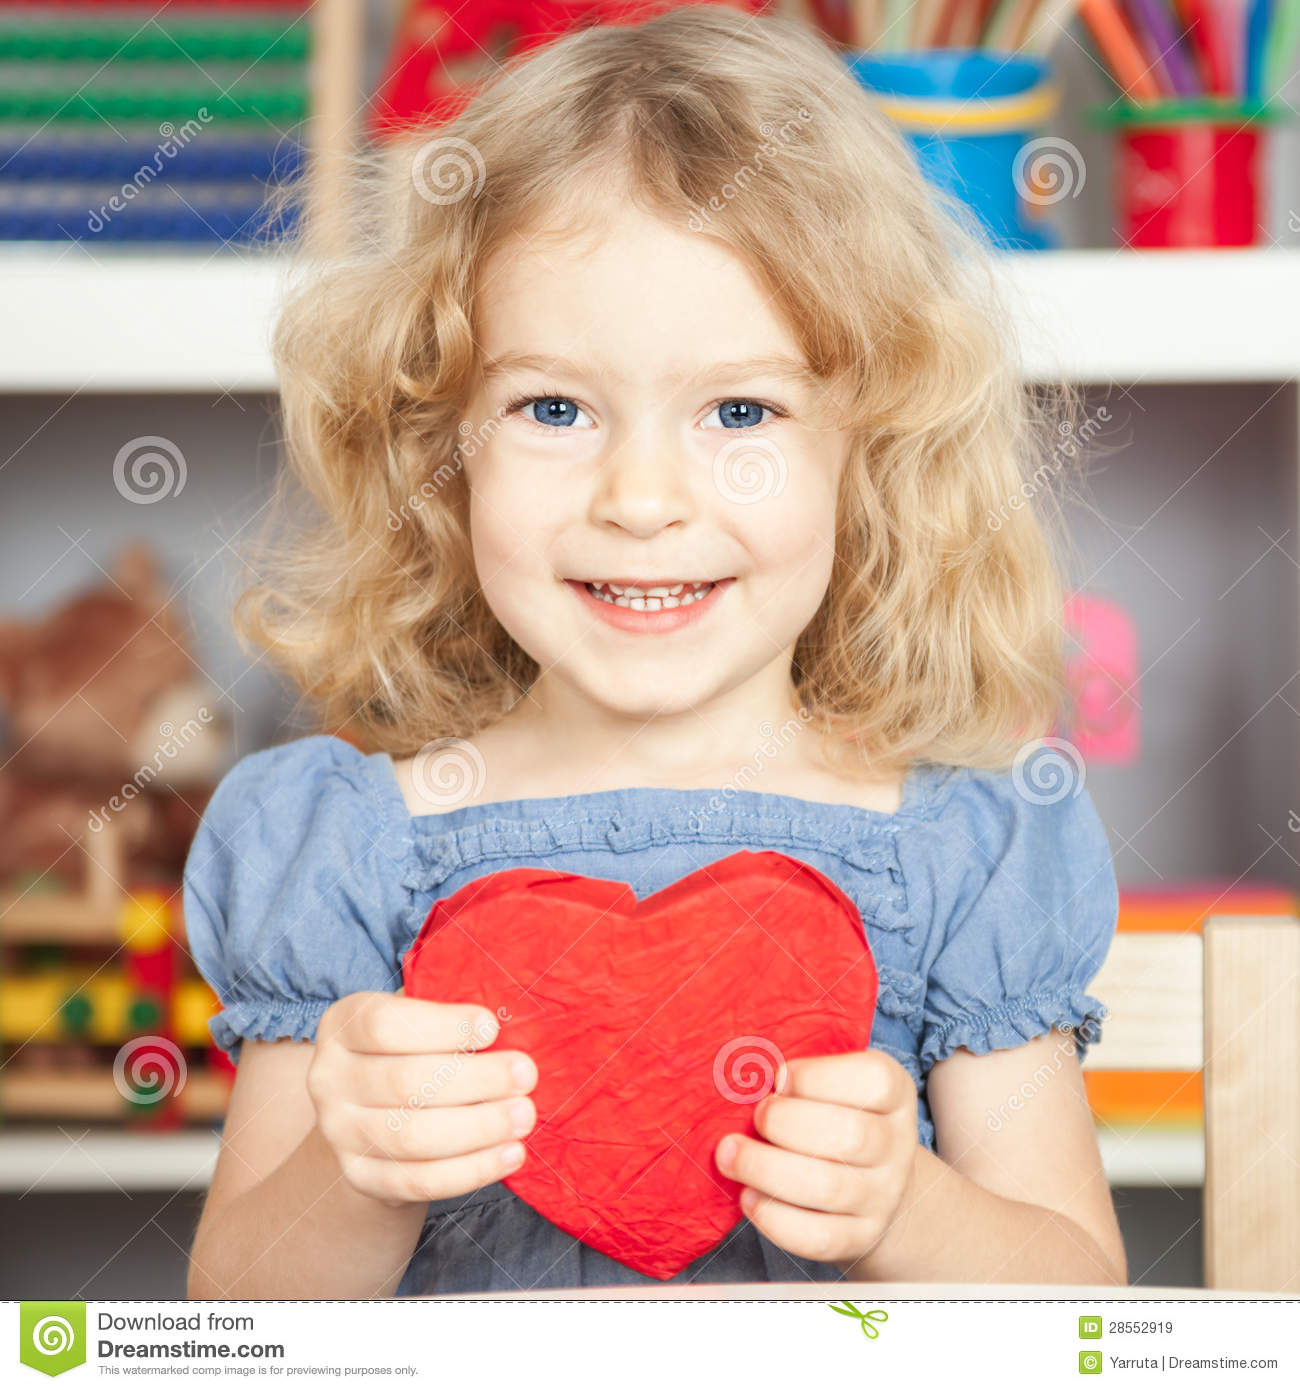 L Love U Bart U A Bby: Child Holding Red Paper Heart Stock Image